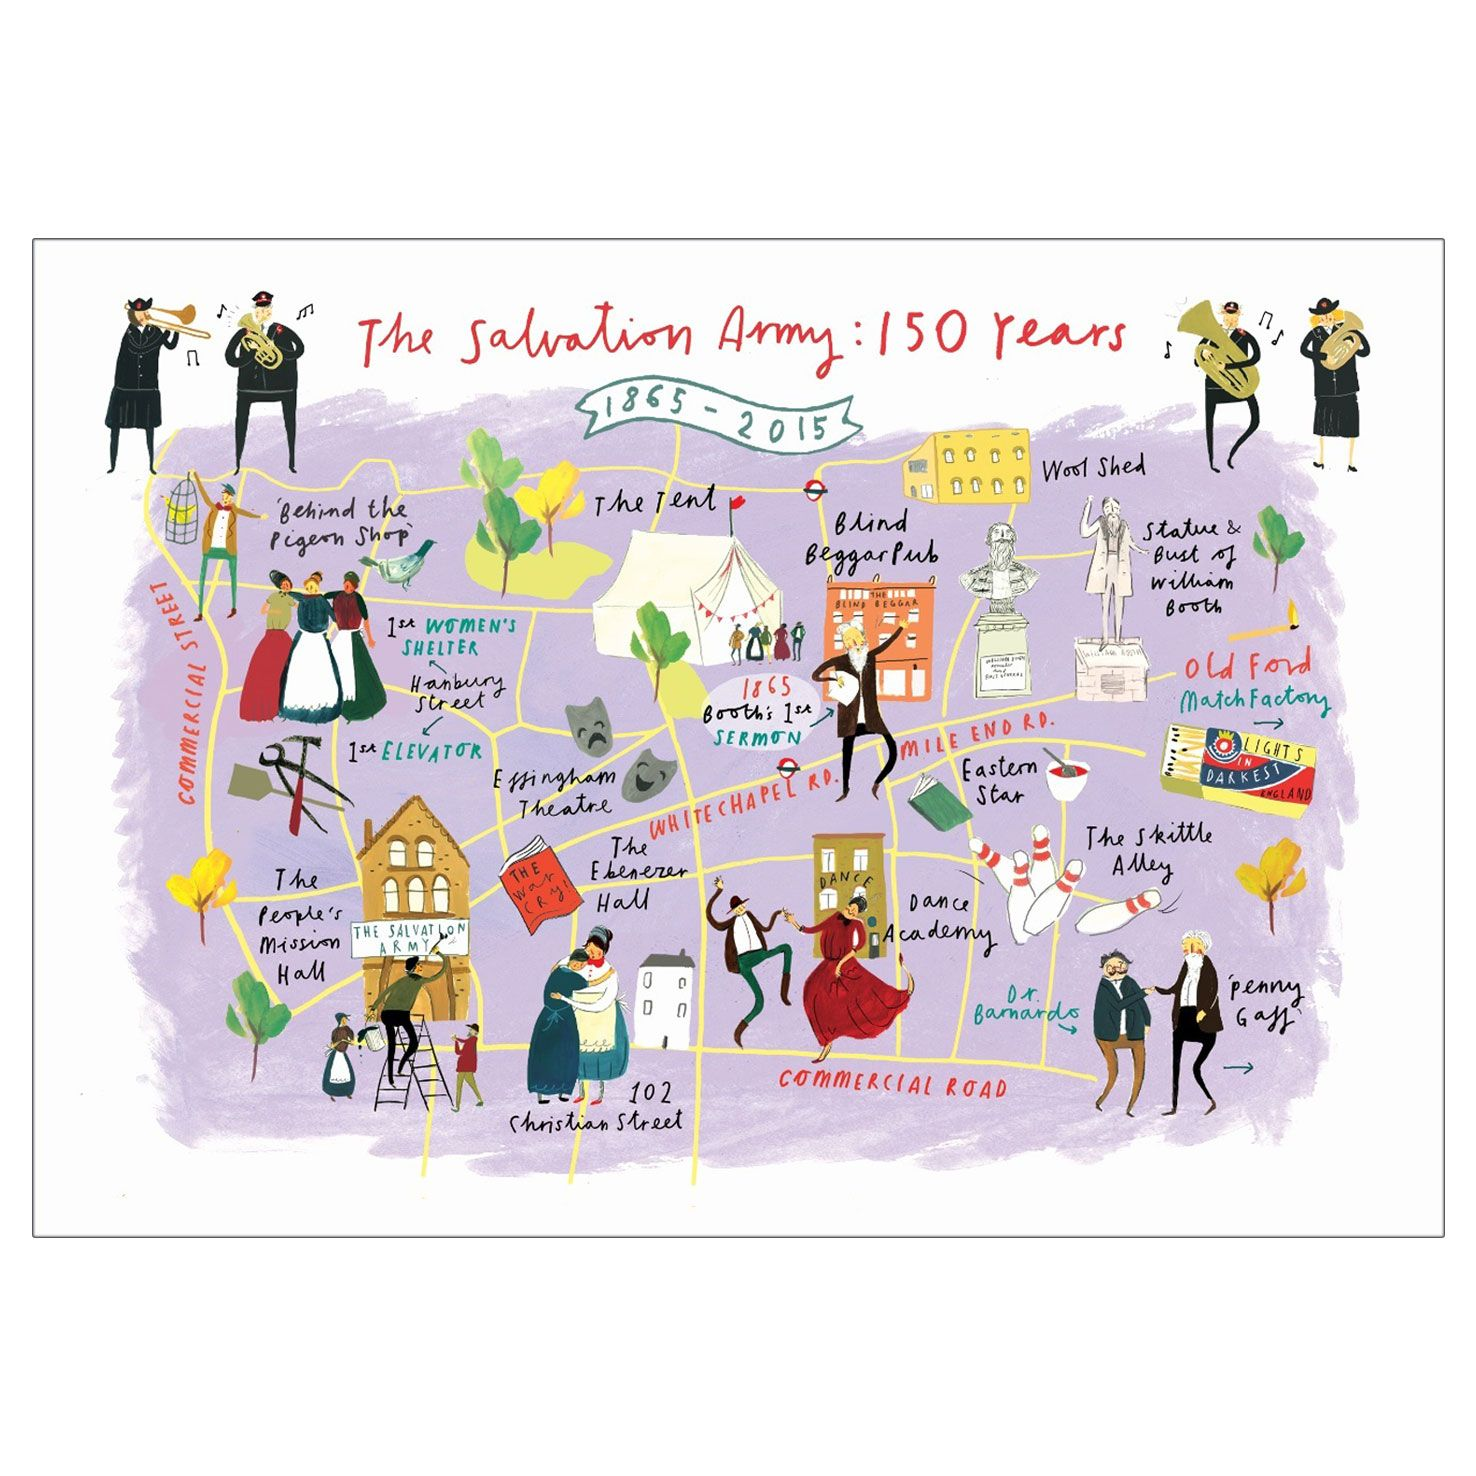 Notelets with Salvation Army Map 150 Years Image